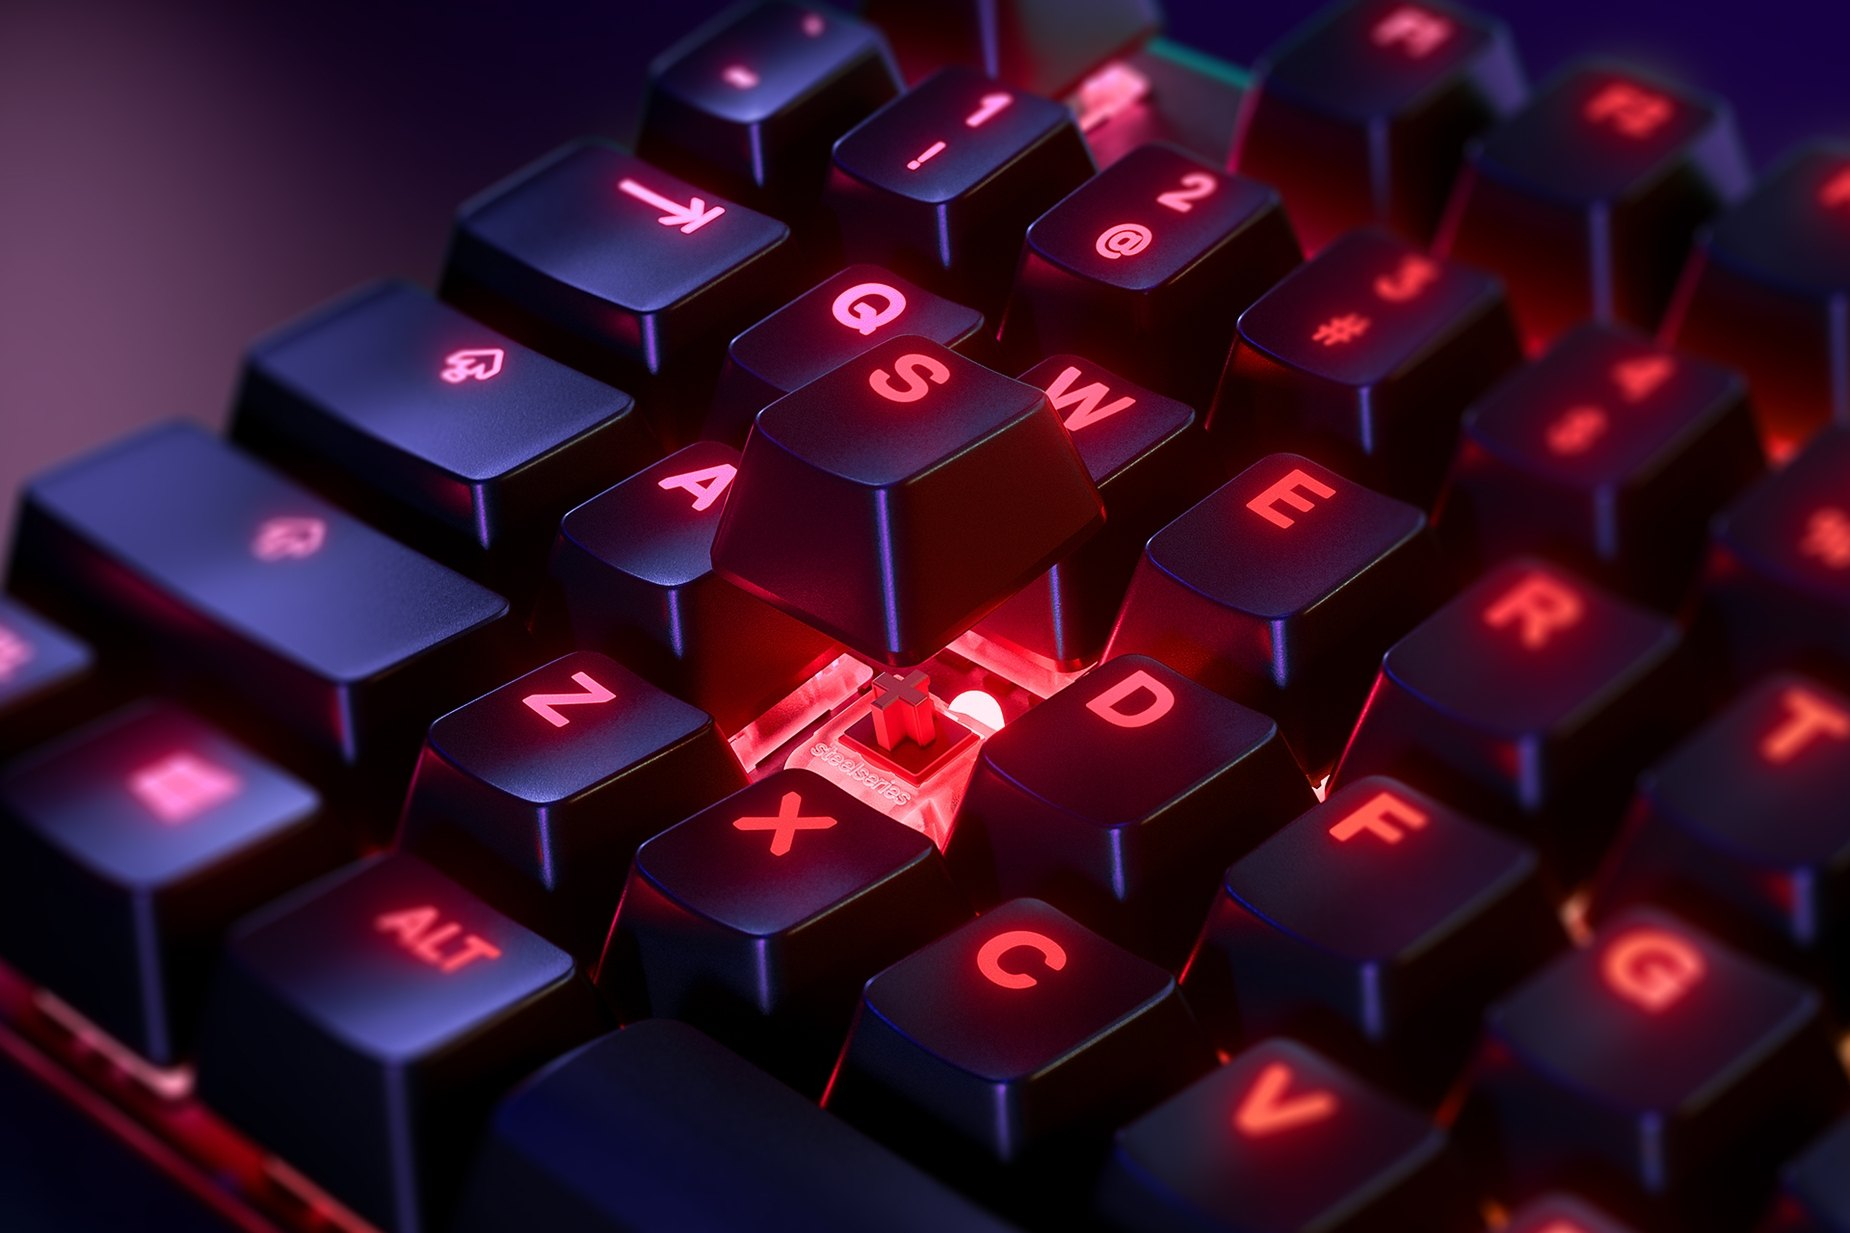 Zoomed in view of a single key on the UK English - Apex 7 (Red Switch) gaming keyboard, the key is raised up to show the SteelSeries QX2 Mechanical RGB Switch underneath